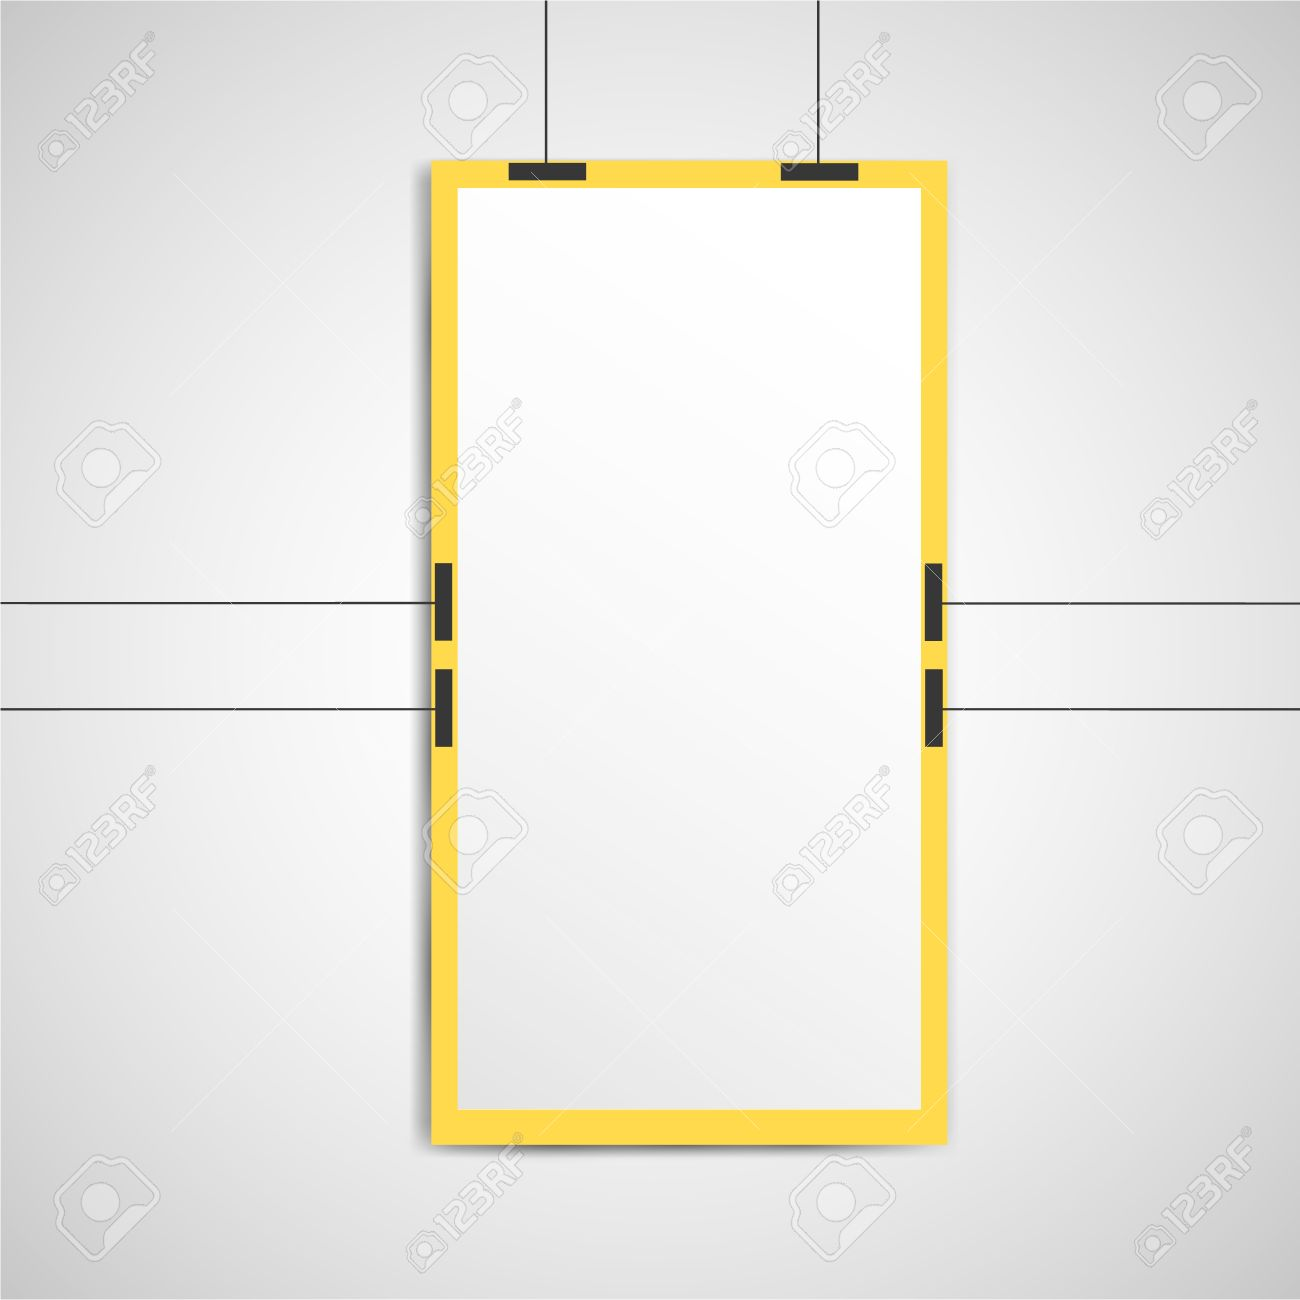 poster mockup template royalty free cliparts vectors and stock